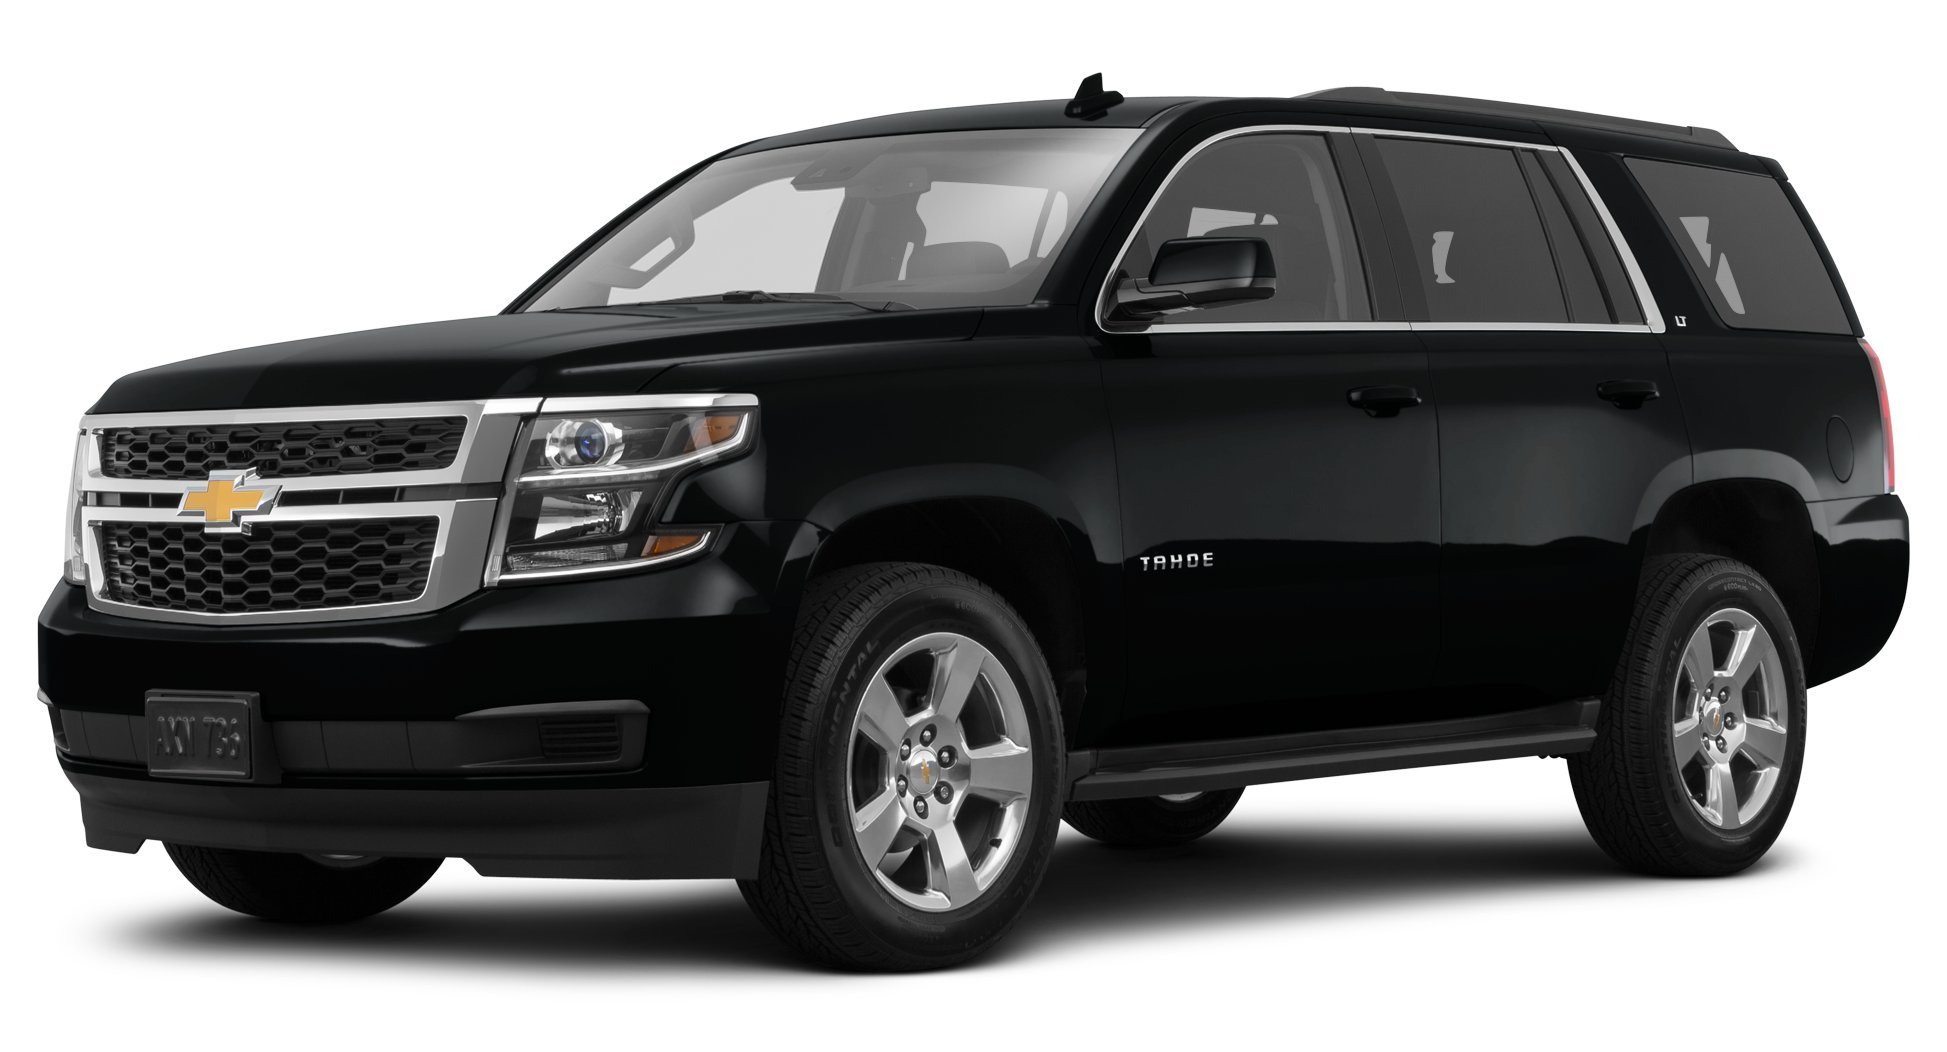 Amazon.com: 2016 Chevrolet Tahoe Reviews, Images, and ...